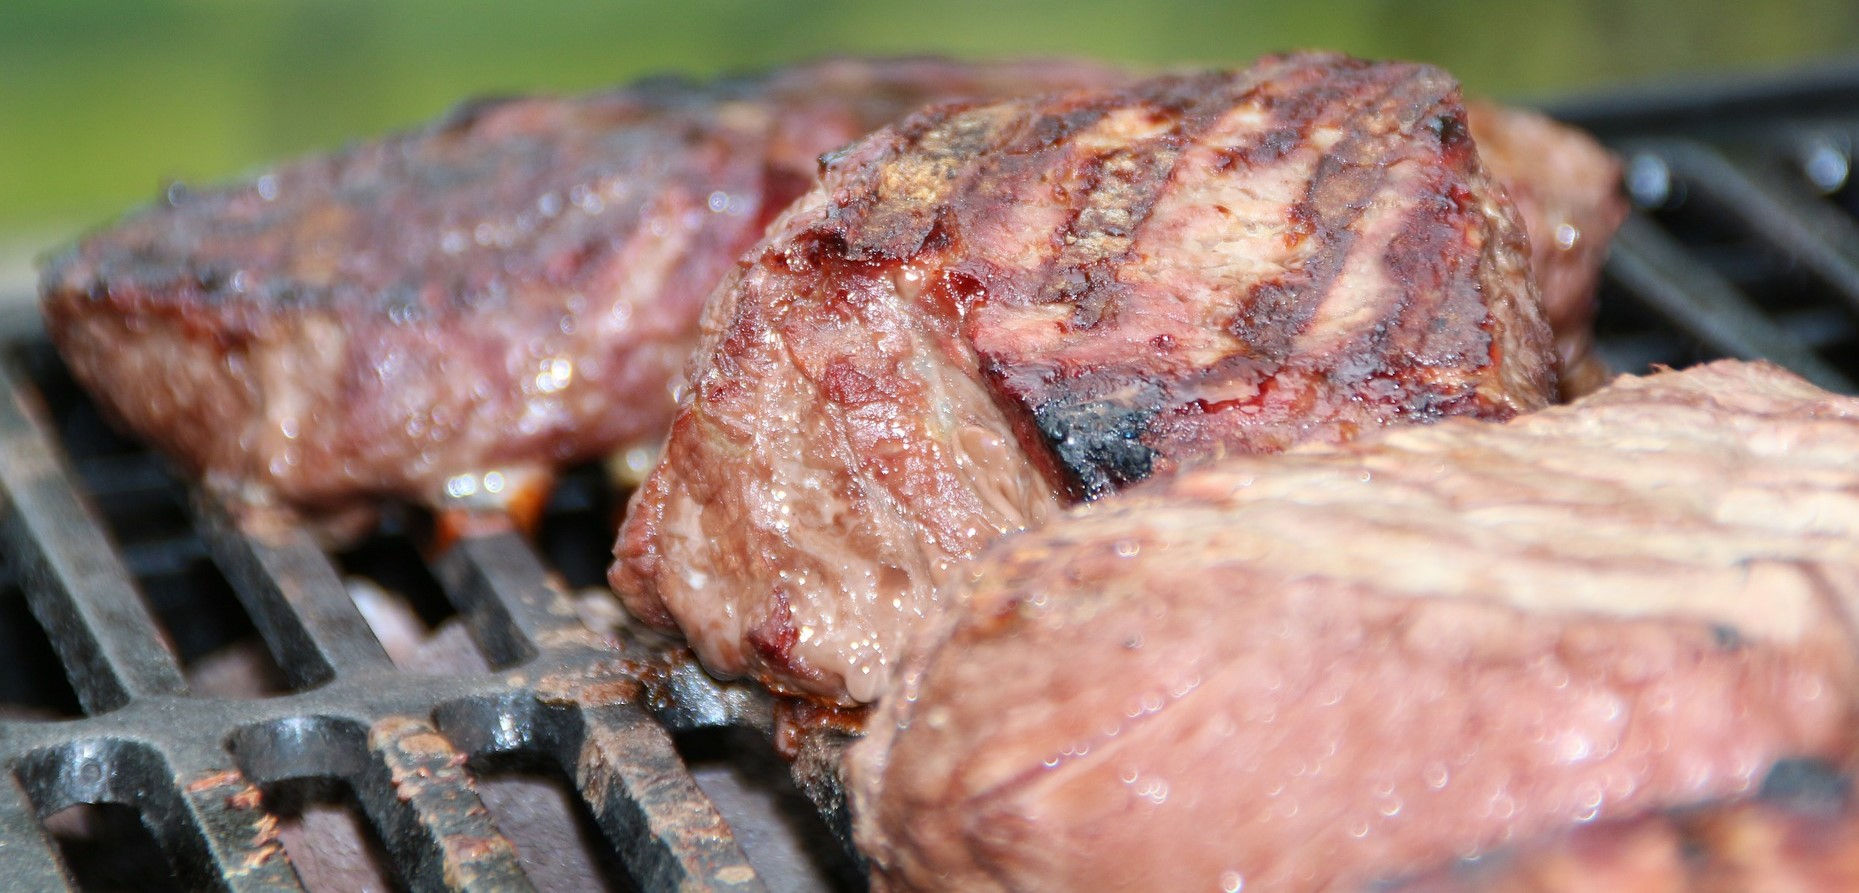 Ag experts, Iowa D.C. delegation eye ways to add meatpacking competition